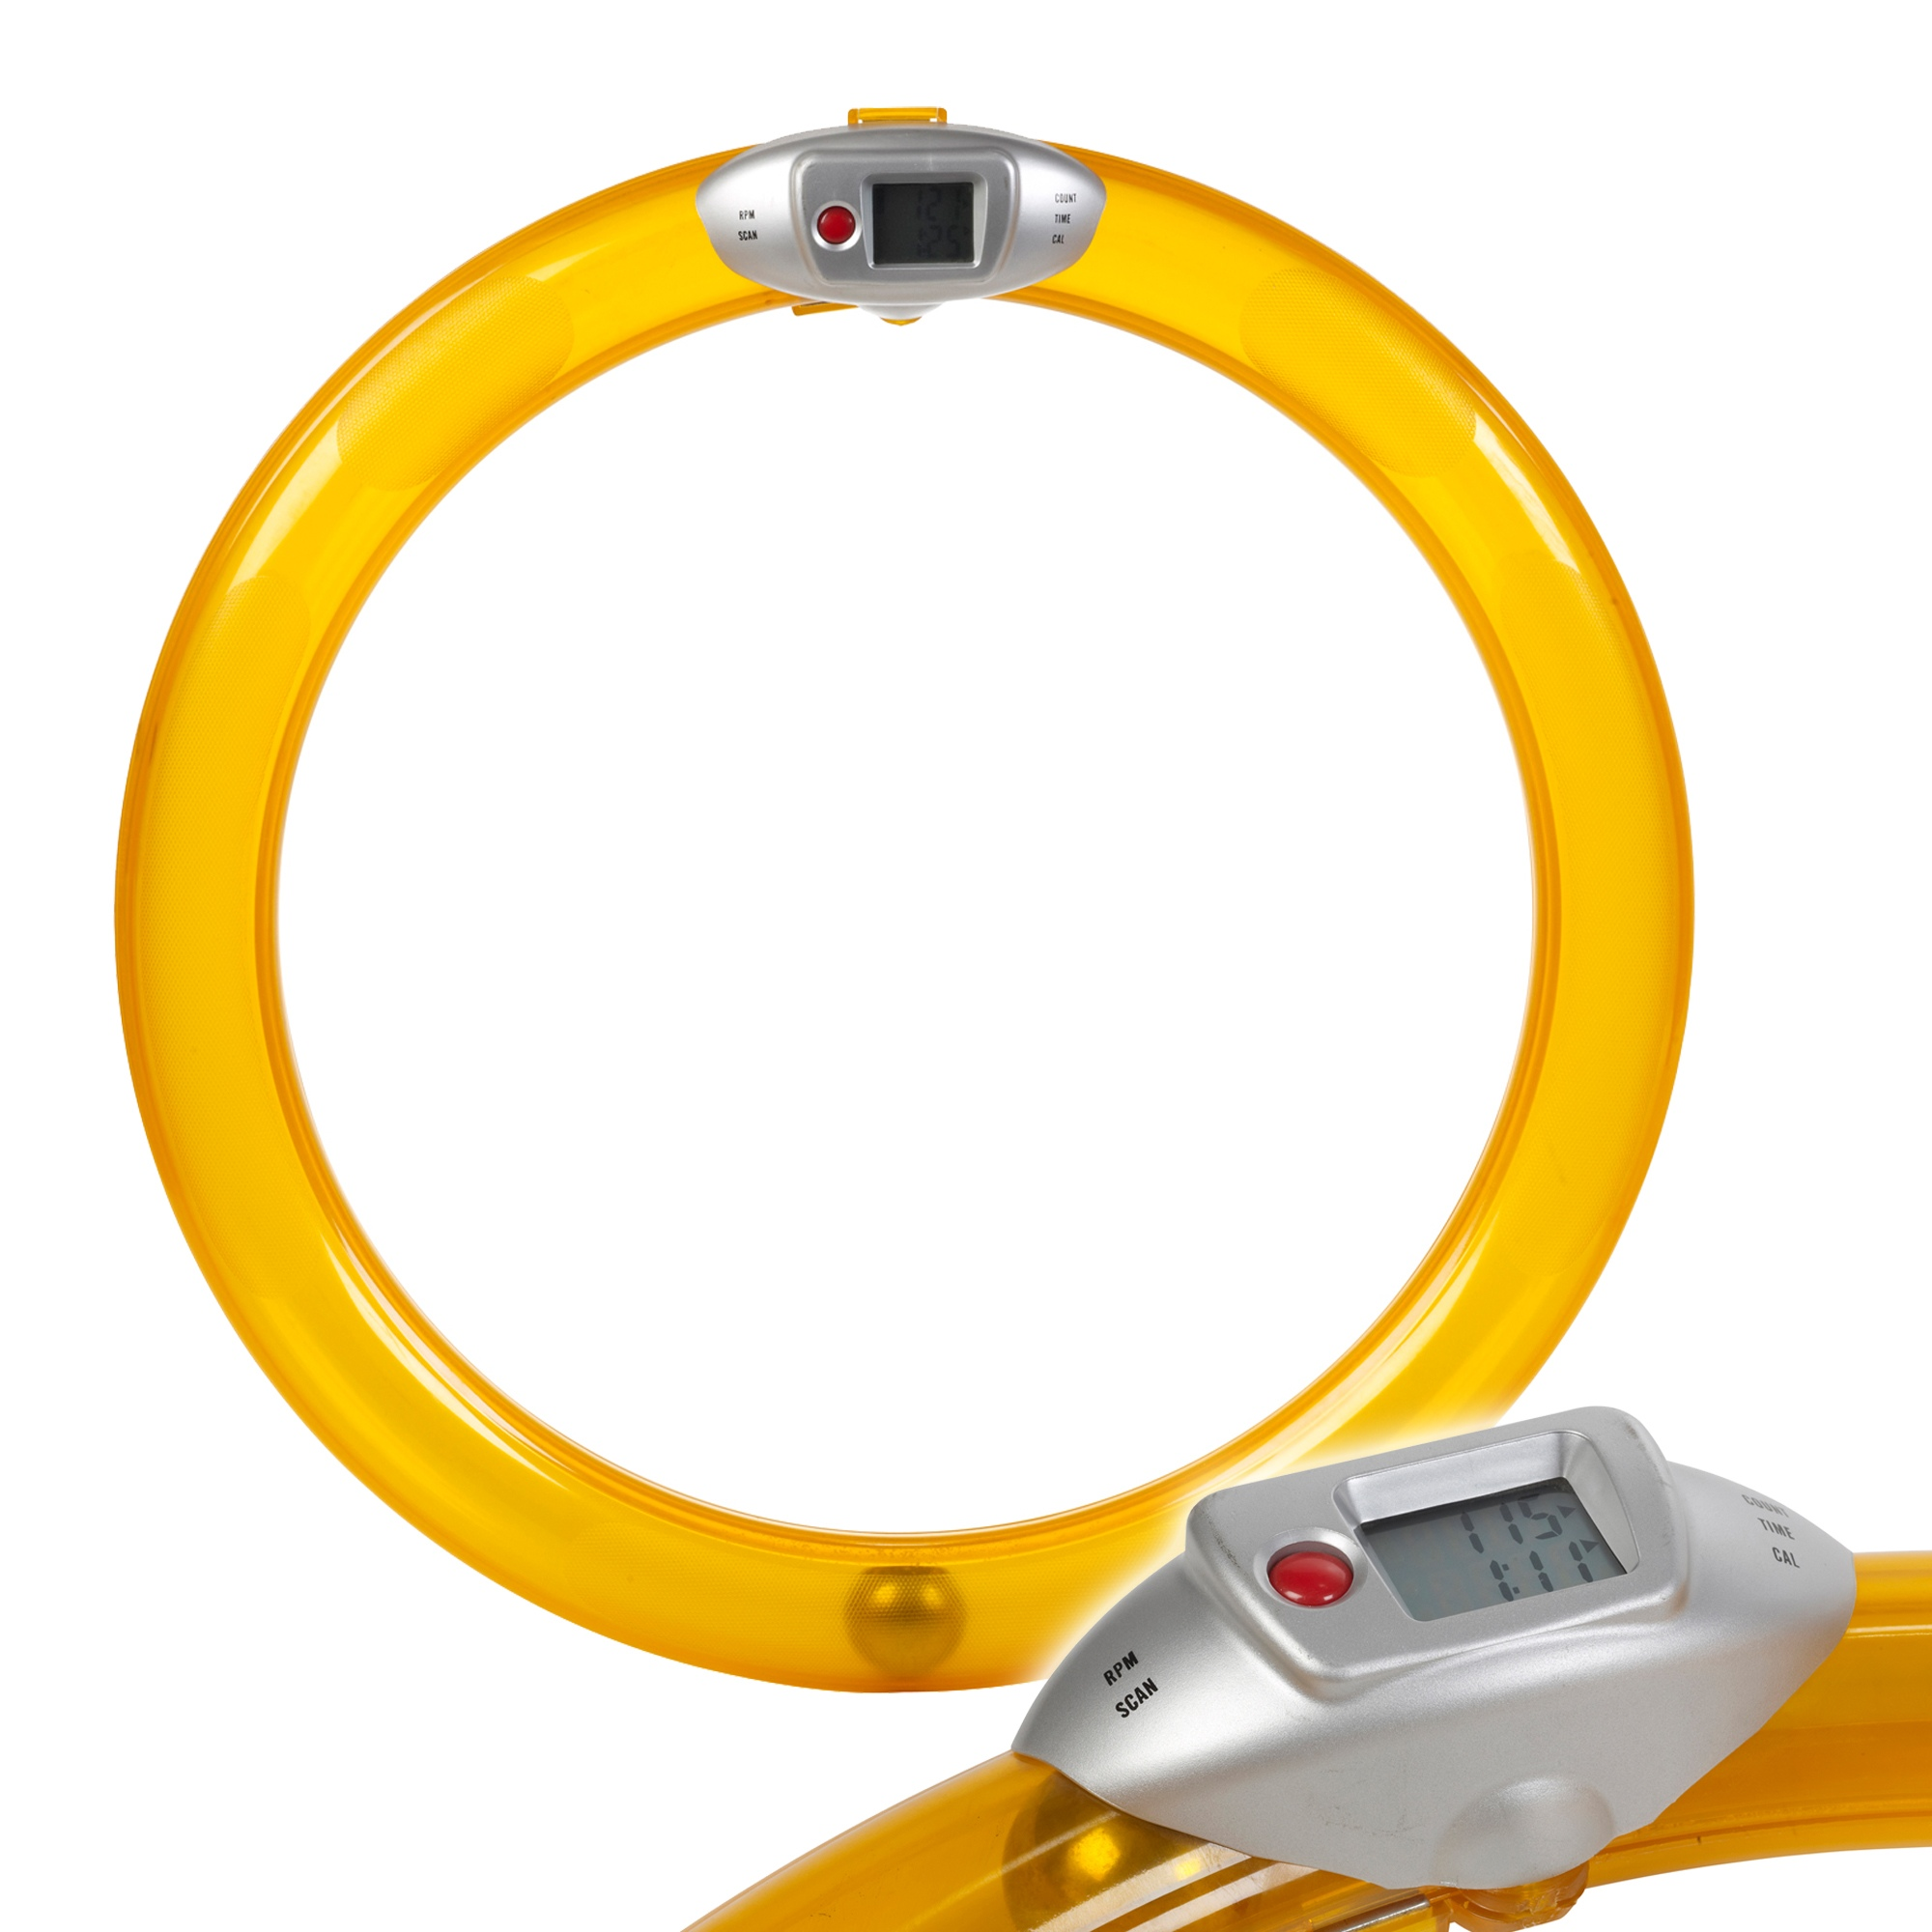 slice life health exercise of and fitness rings welcome